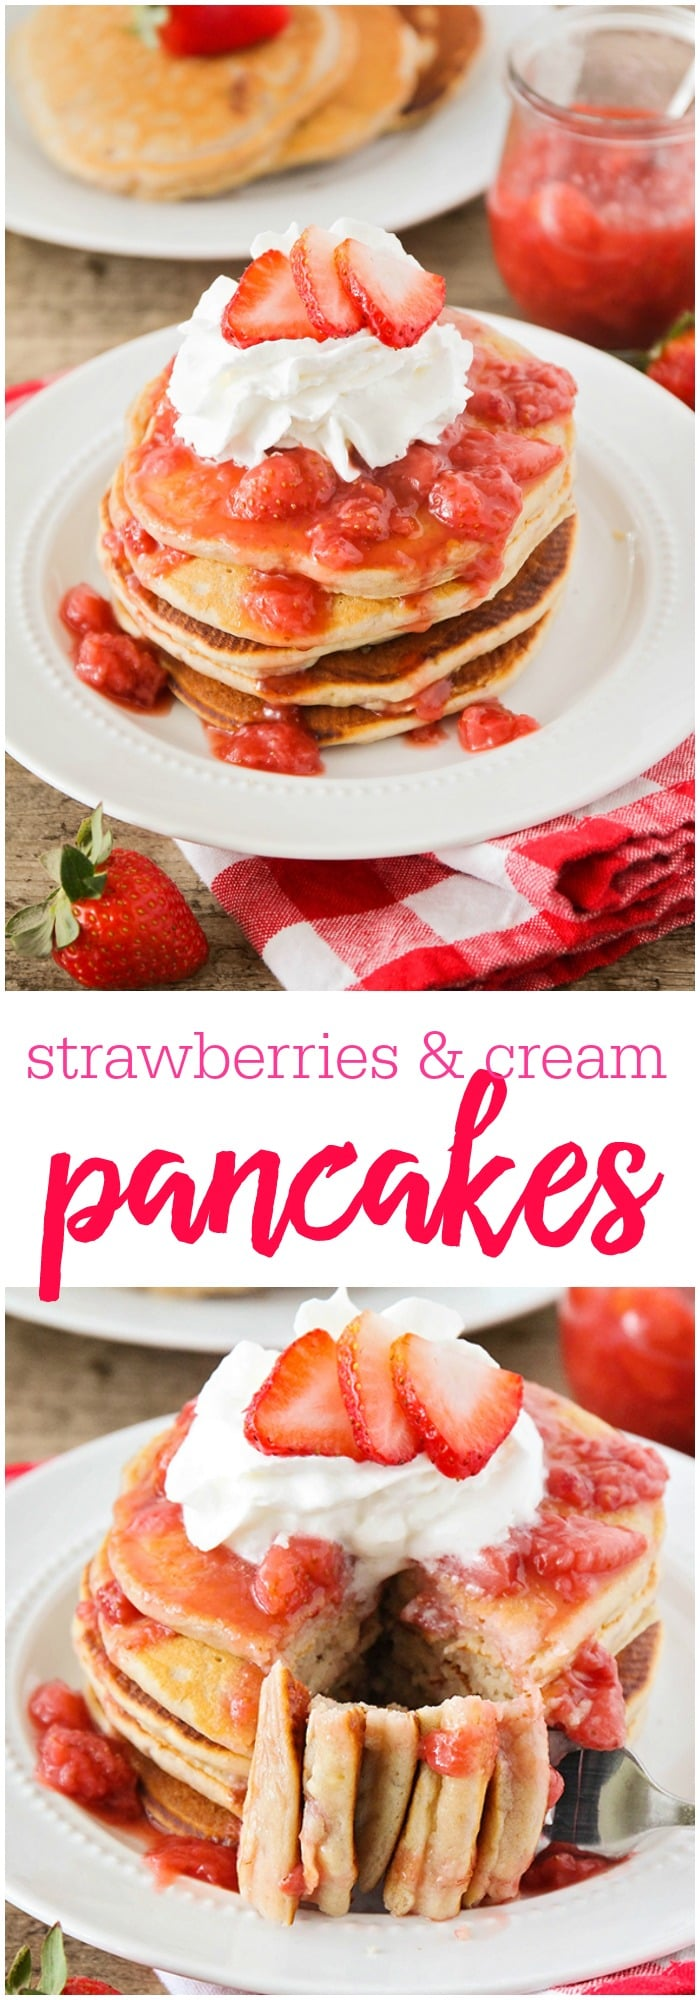 Strawberries & Cream Pancakes - These strawberries and cream pancakes ...